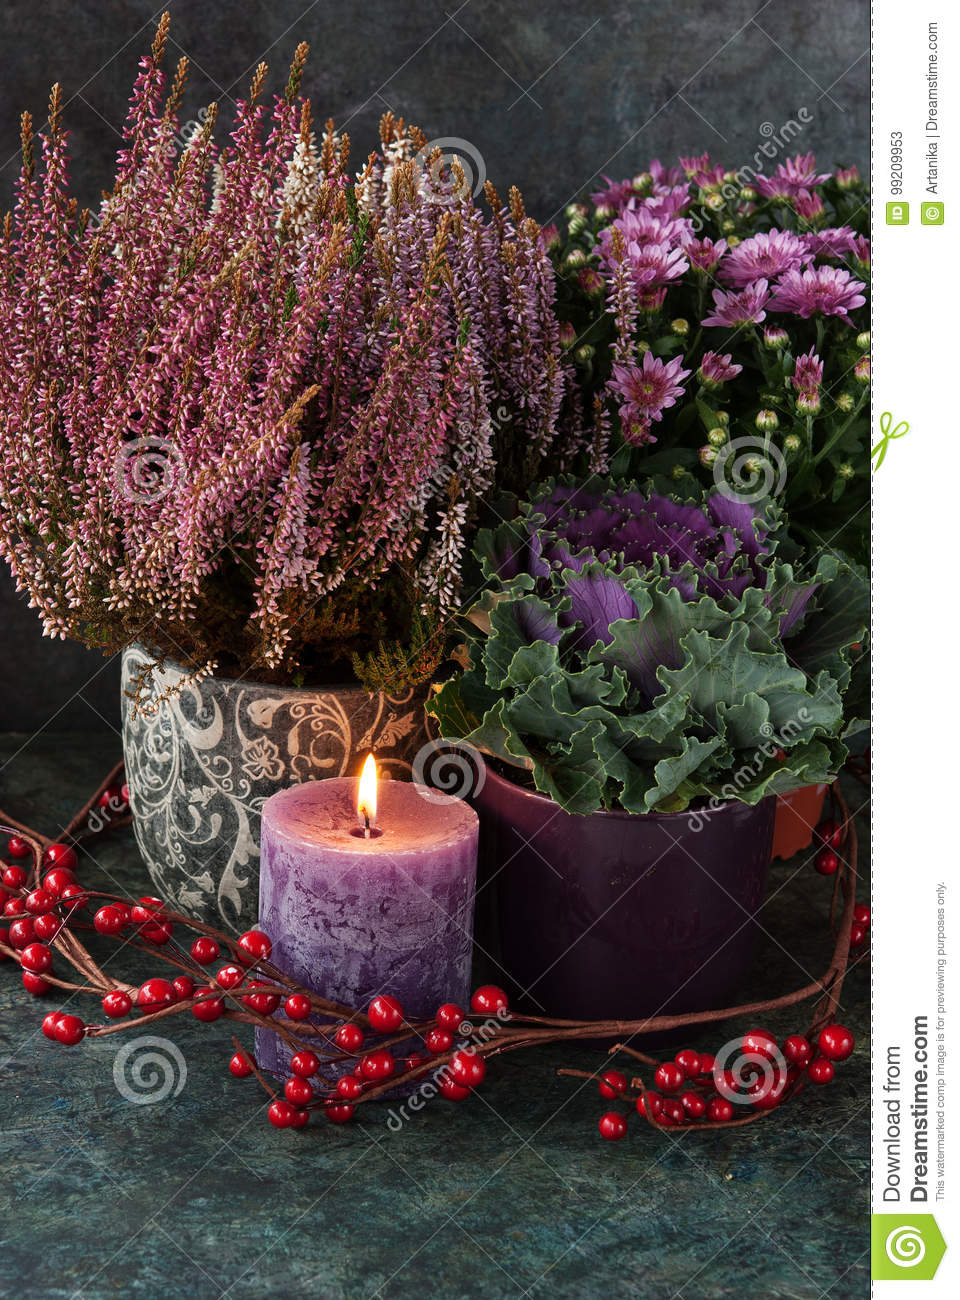 Download Autumn Decor With Candle And Flowers Stock Image - Image of holiday, festive: 99209953